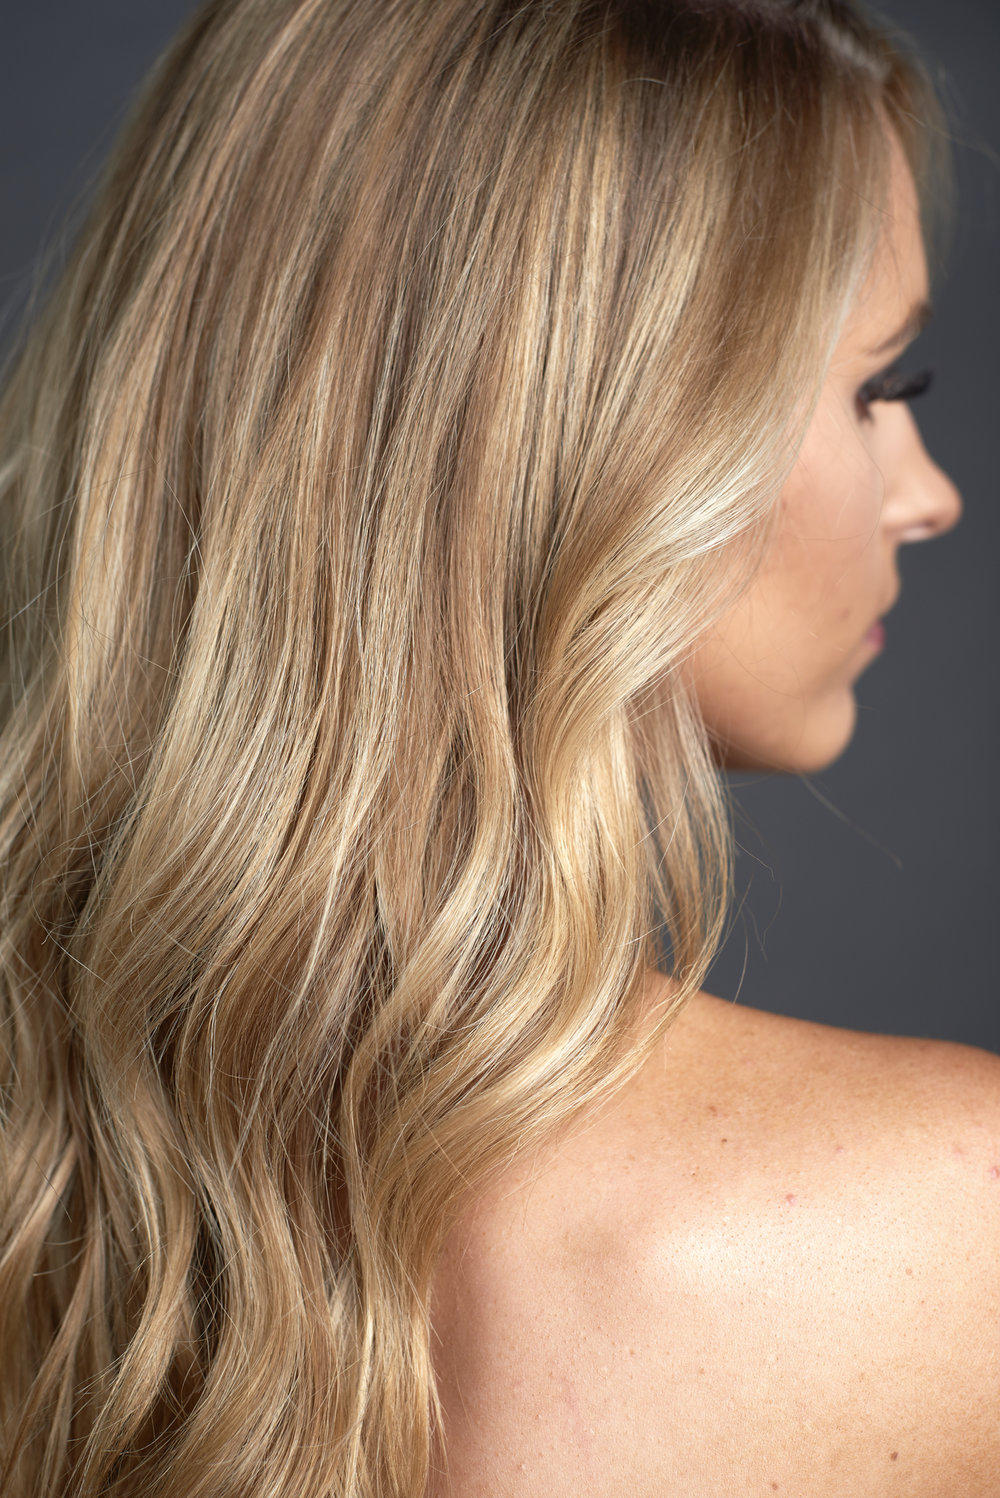 SEPT 11 BALAYAGE + FUNDAMENTALS - Led by FORM co-owners Leighanne Shelton + Whitney Haynes